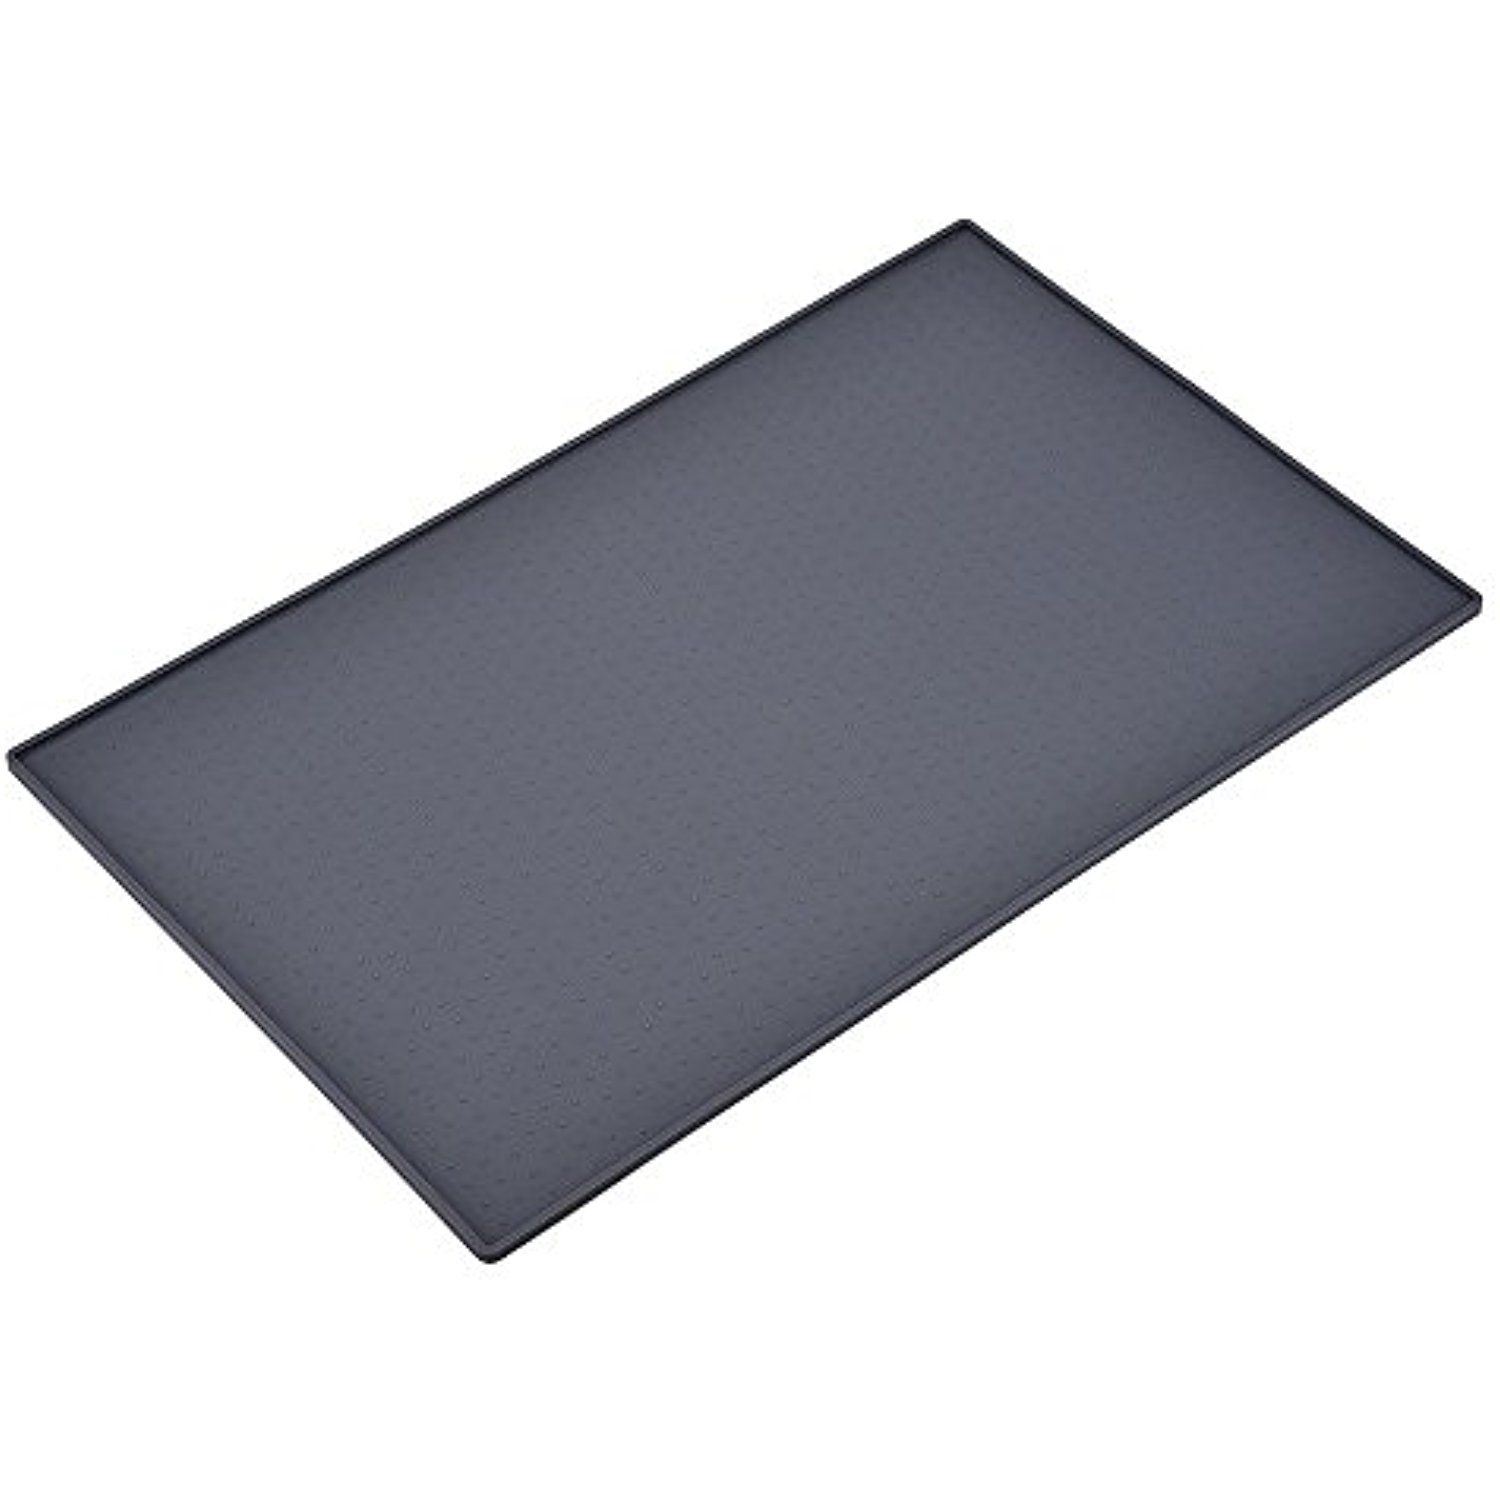 dog photo abedoe p pad for plac your placemat rubber feeder protects silicone mat feeding mats large pet waterproof food cat floor